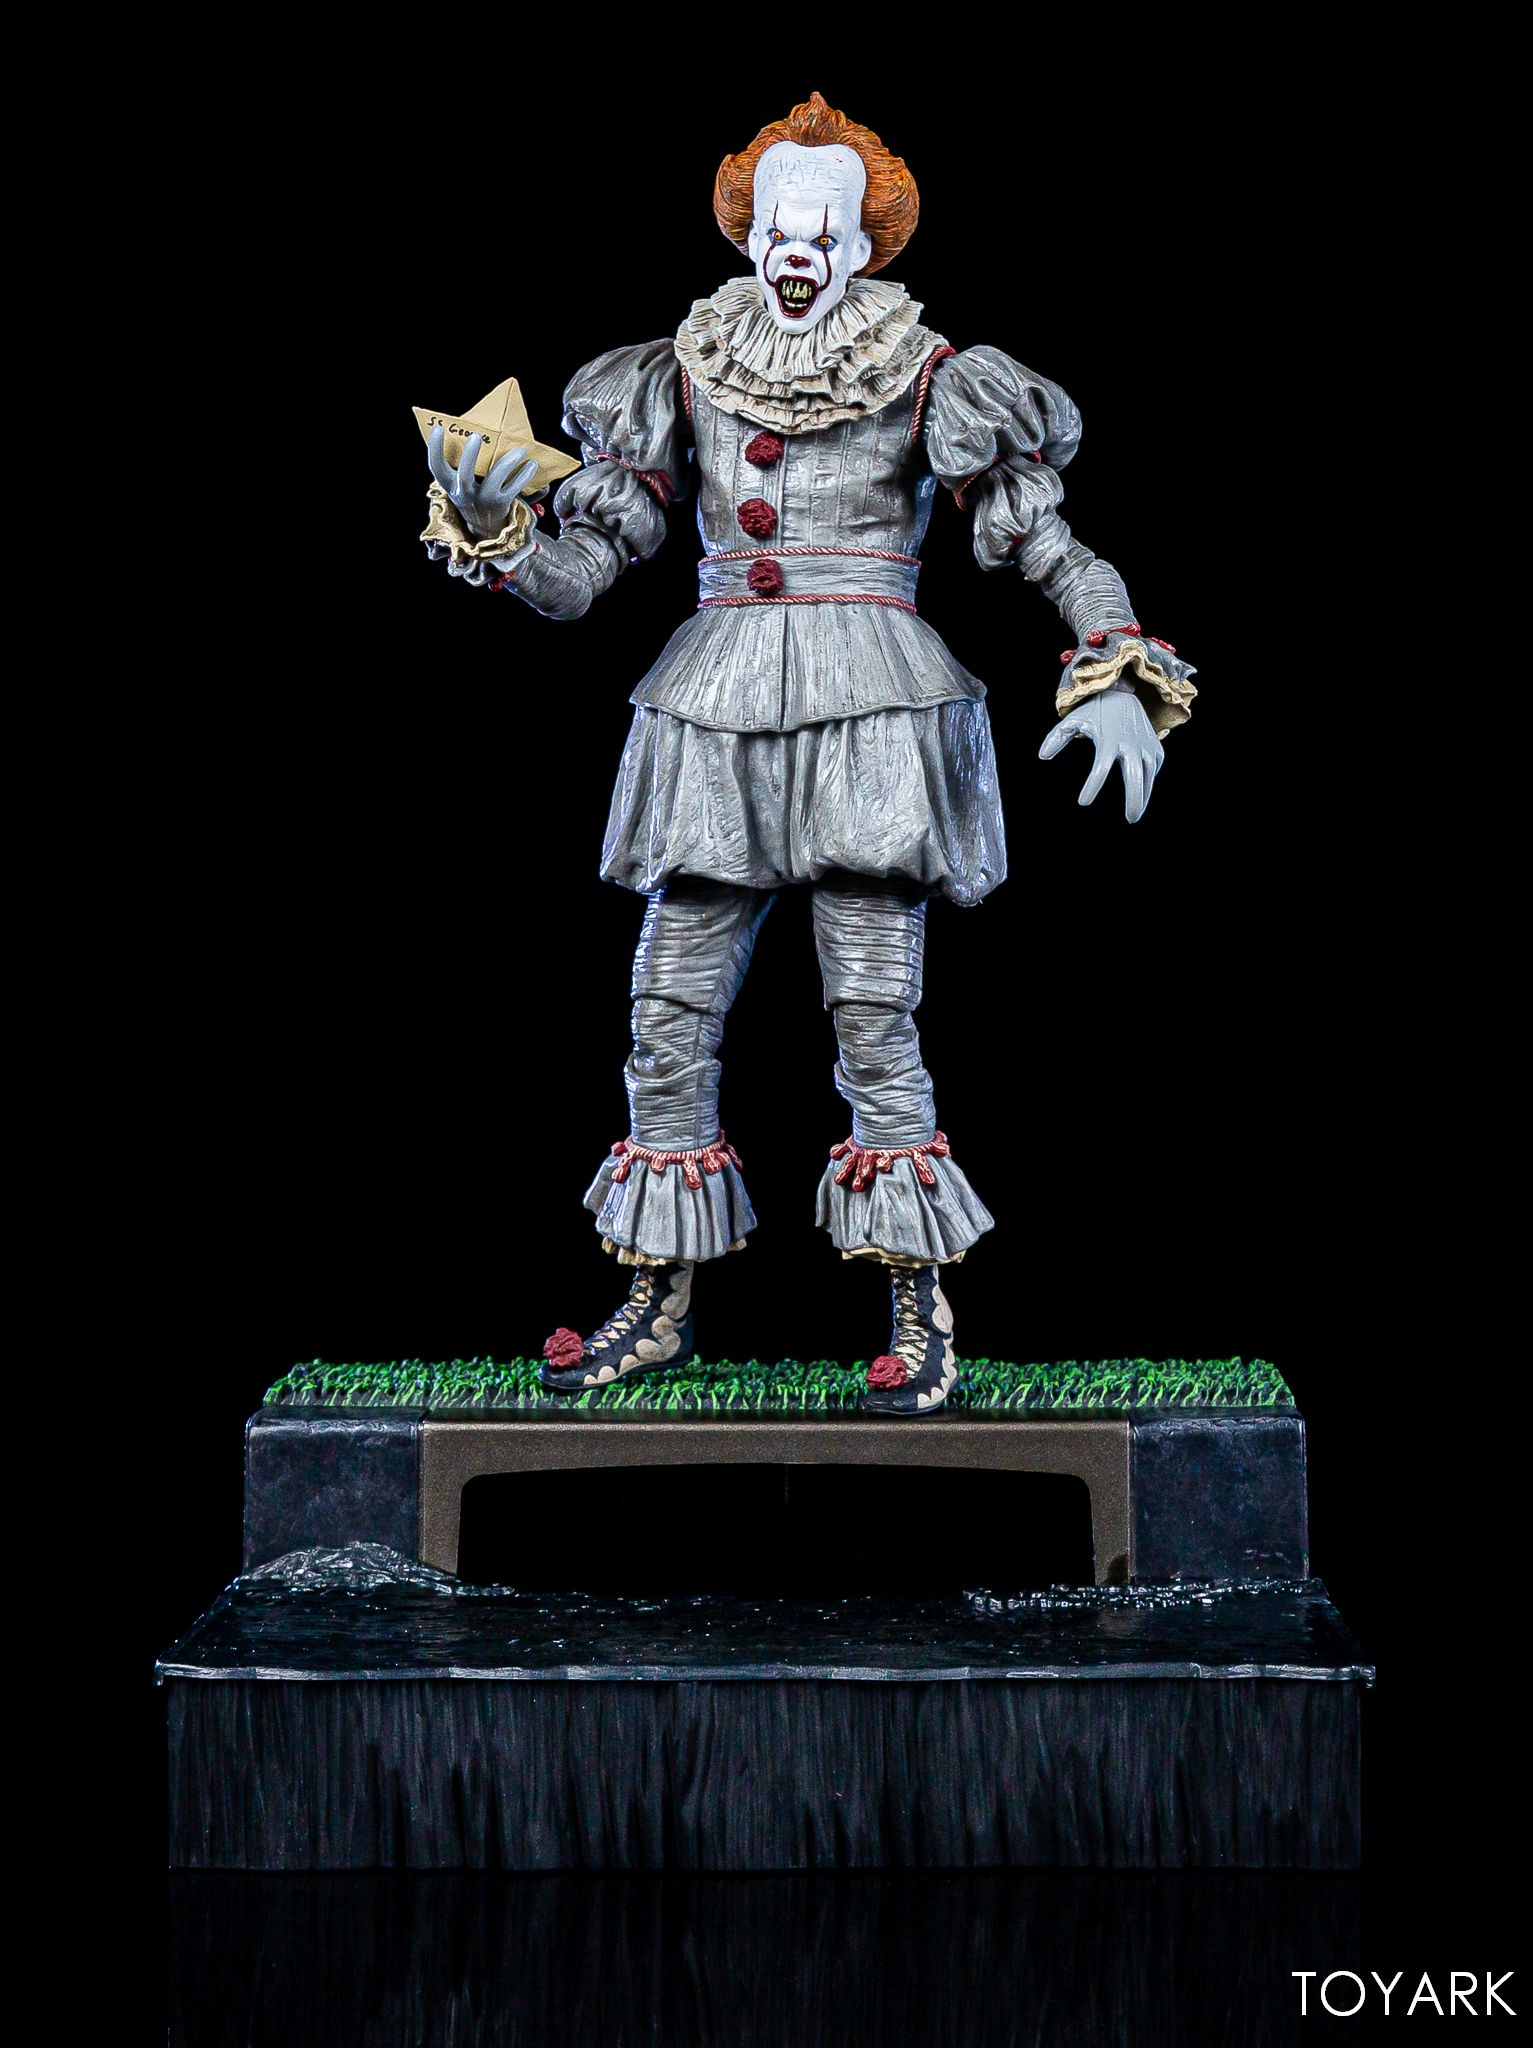 https://news.toyark.com/wp-content/uploads/sites/4/2019/05/NECA-Pennywise-Accessory-Set-047.jpg